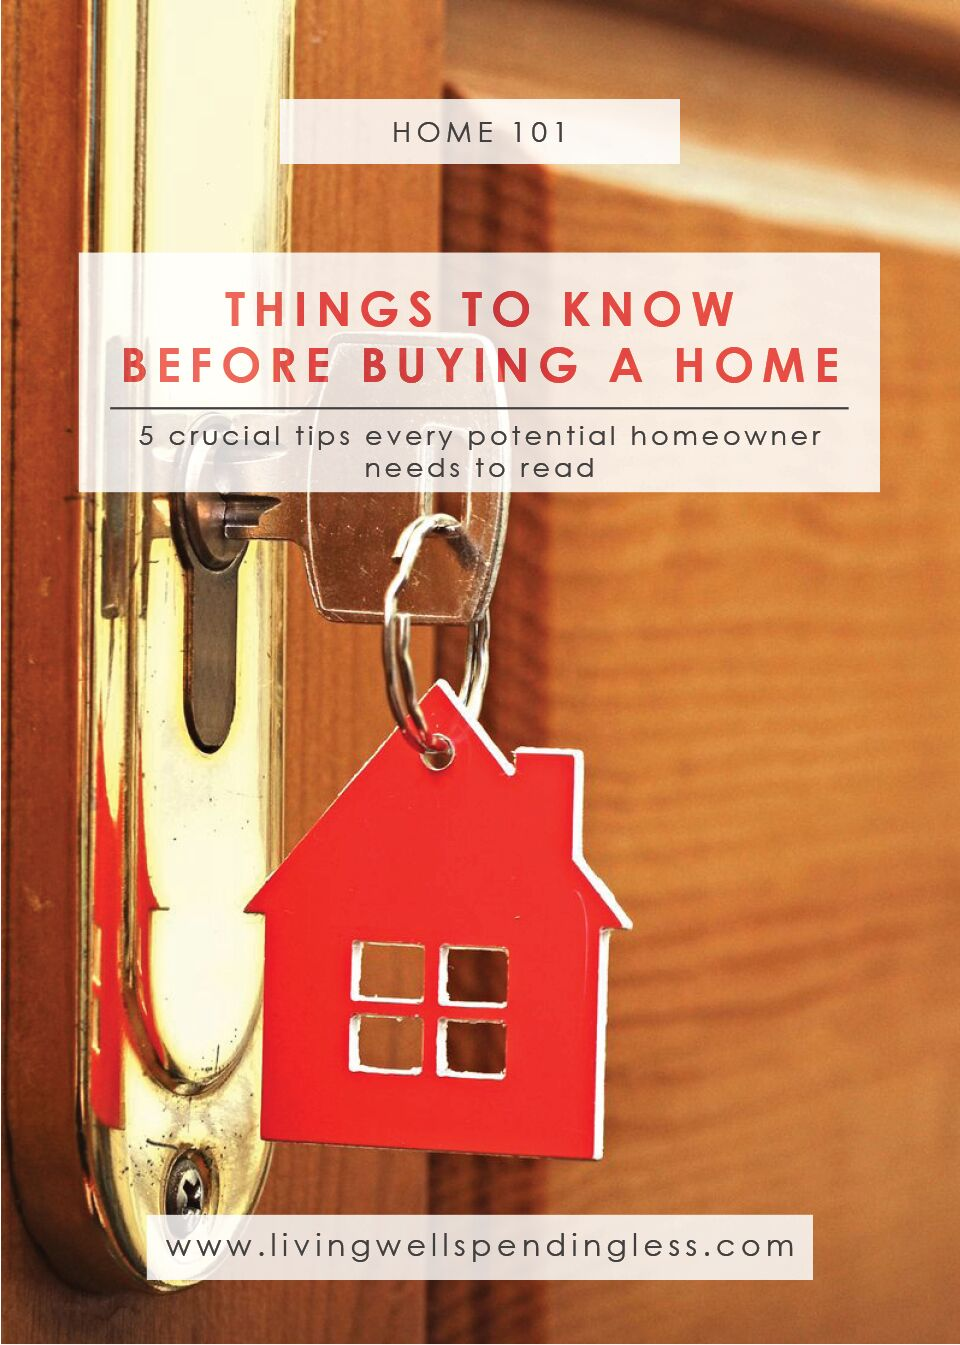 Buying a Home | Home 101 | Money Saving Tips | Saving & Investing | Smart Money | HomeBuying 101 | Real Estate 101